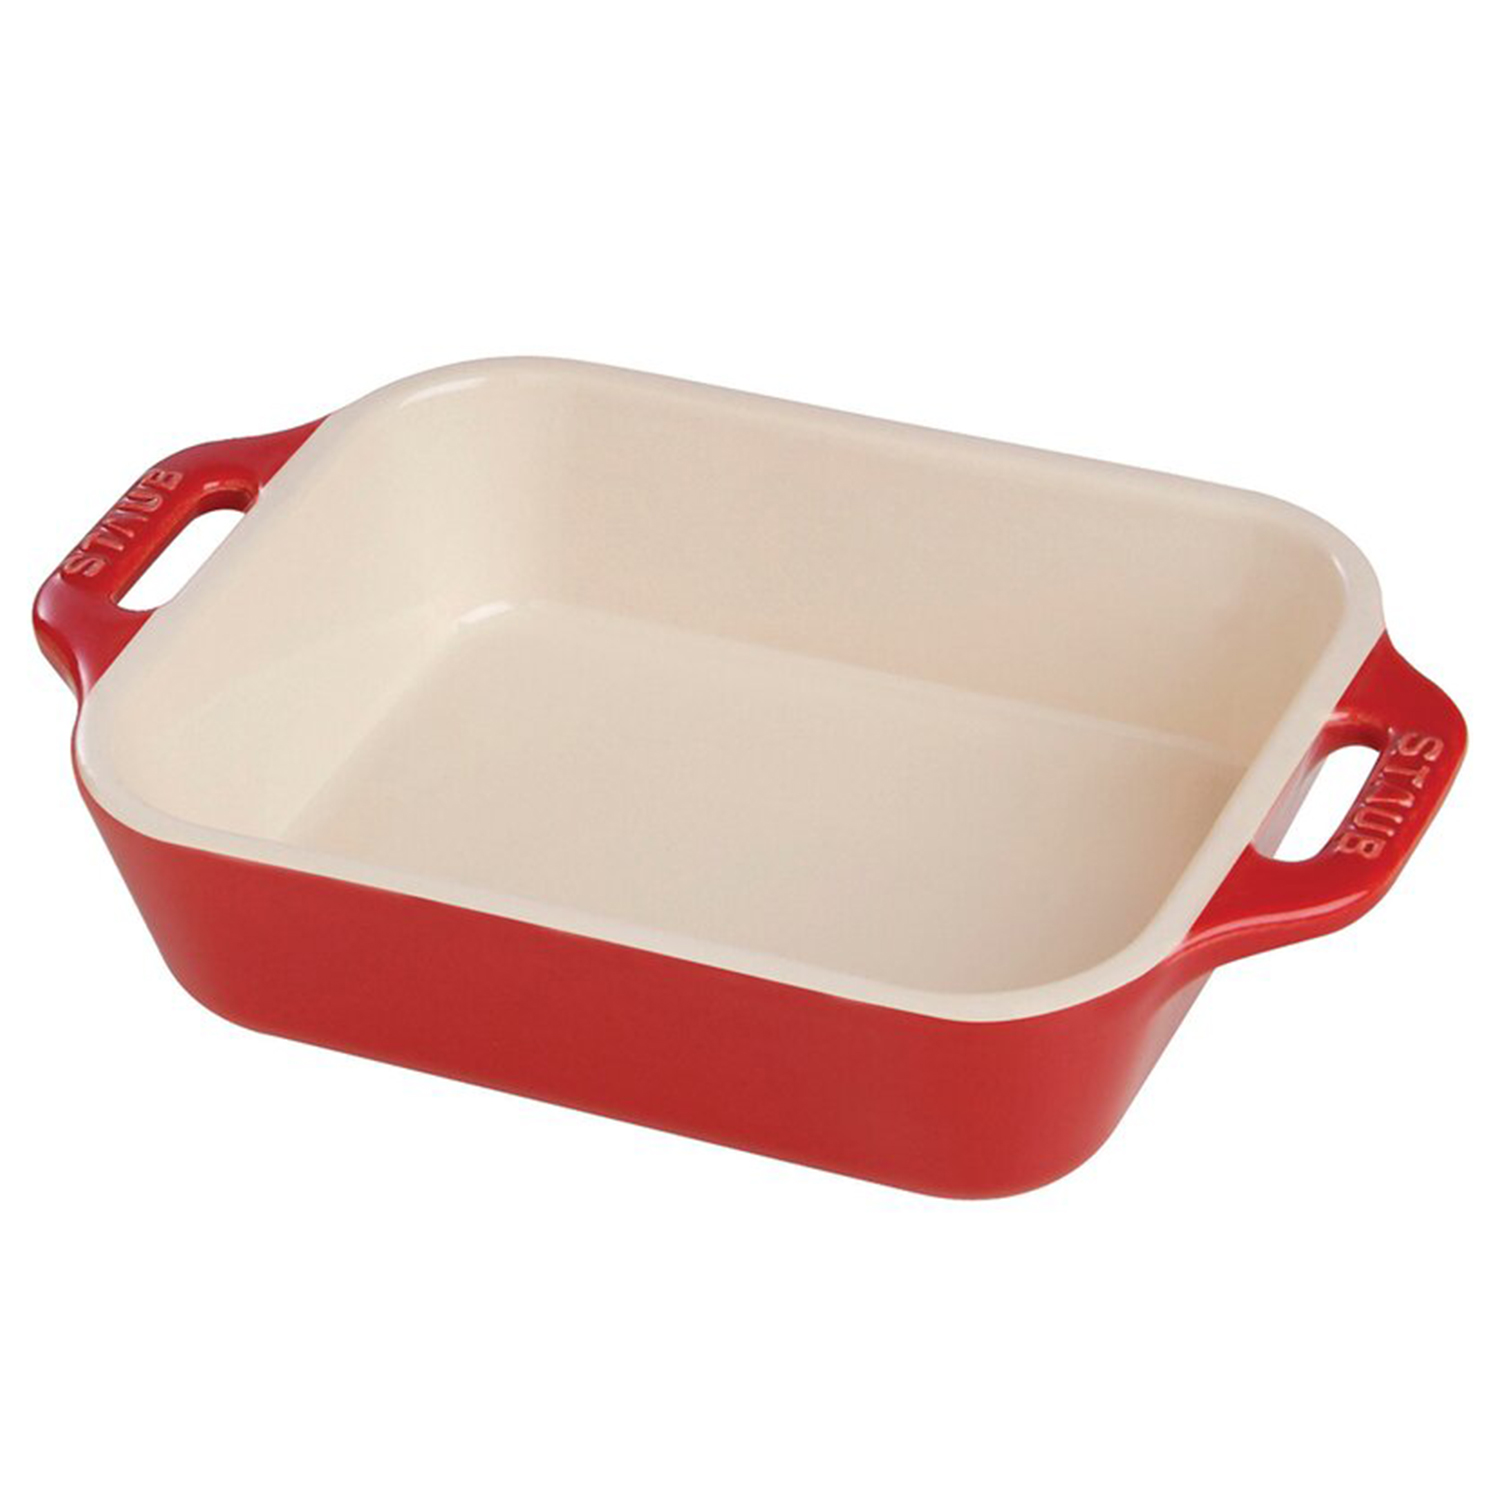 Staub Ceramics 10.5  Rectangular Baking Dish